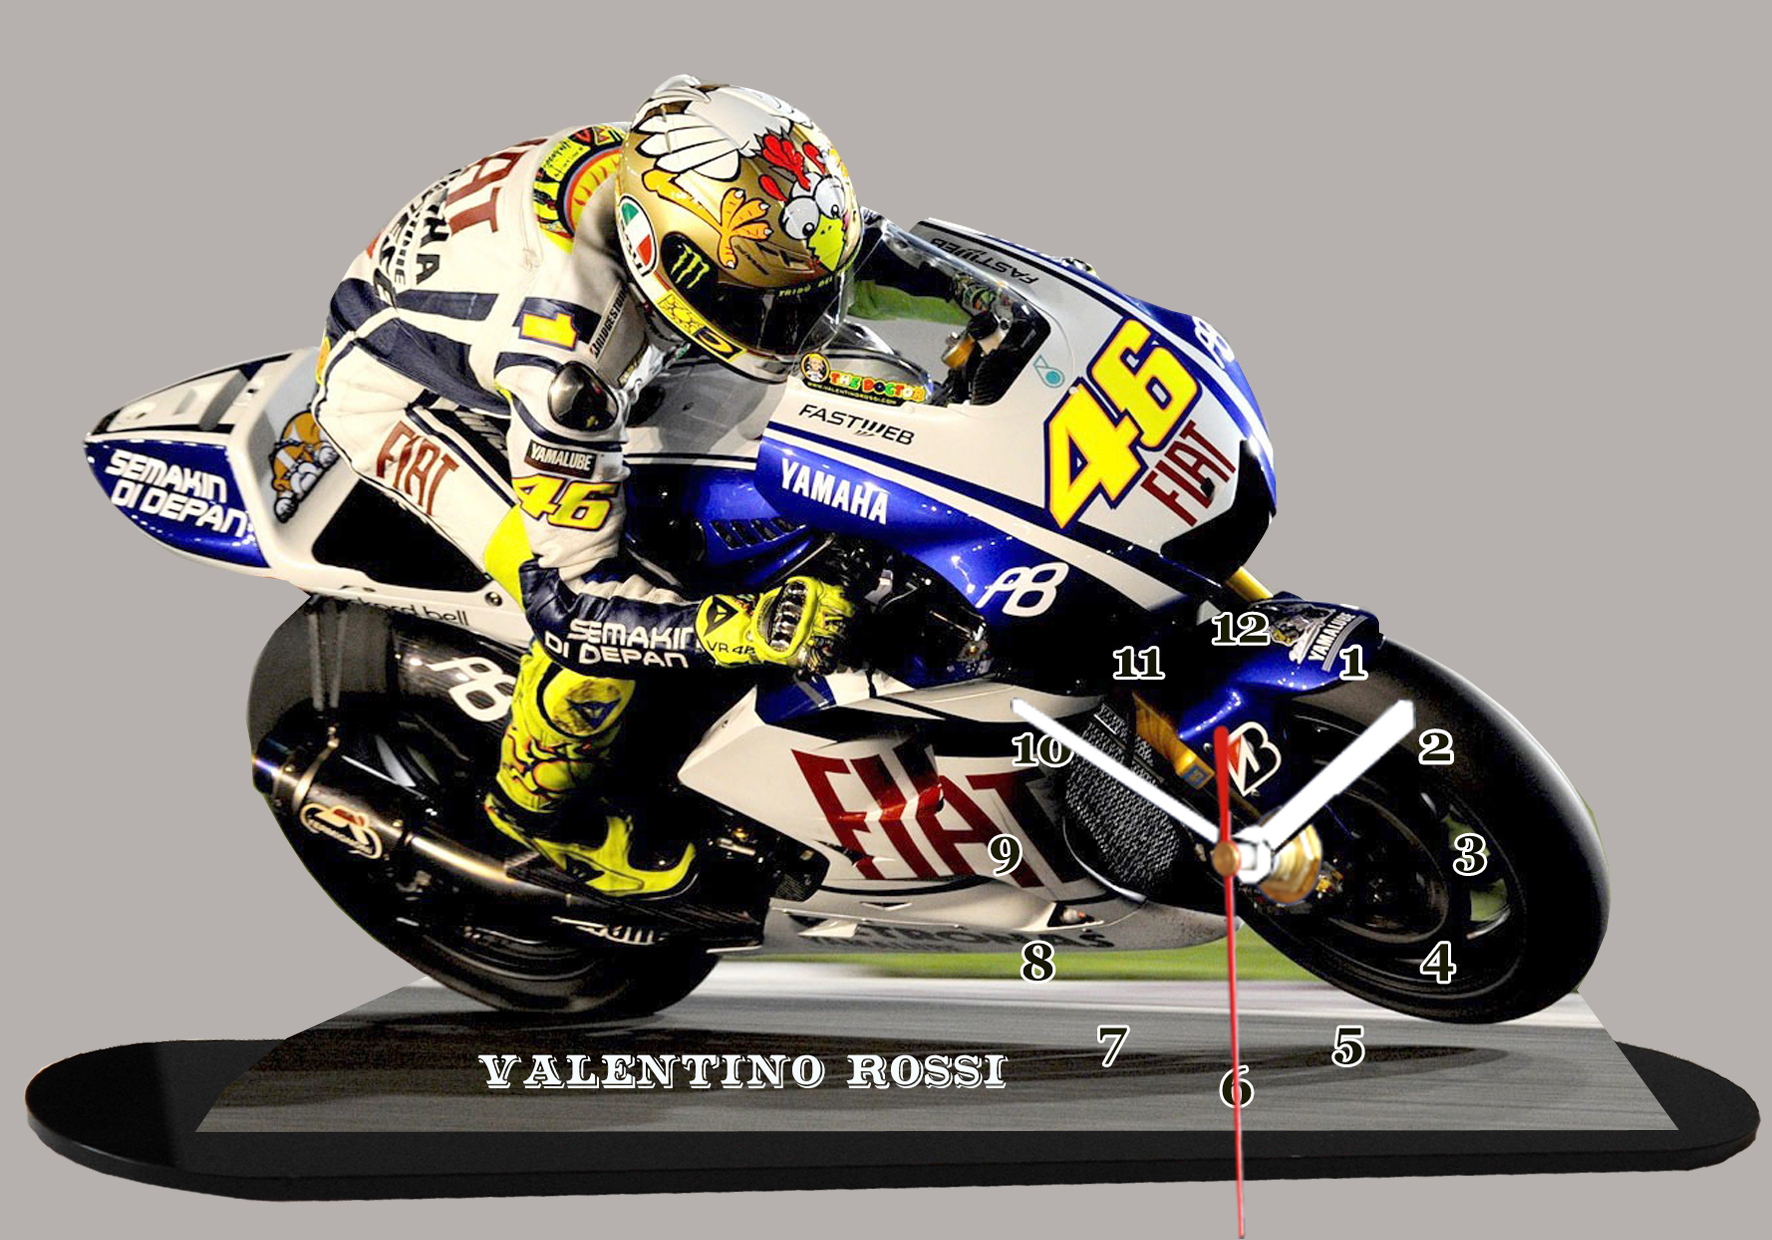 valentino rossi pilote moto gp sur yamaha en moto horloge. Black Bedroom Furniture Sets. Home Design Ideas